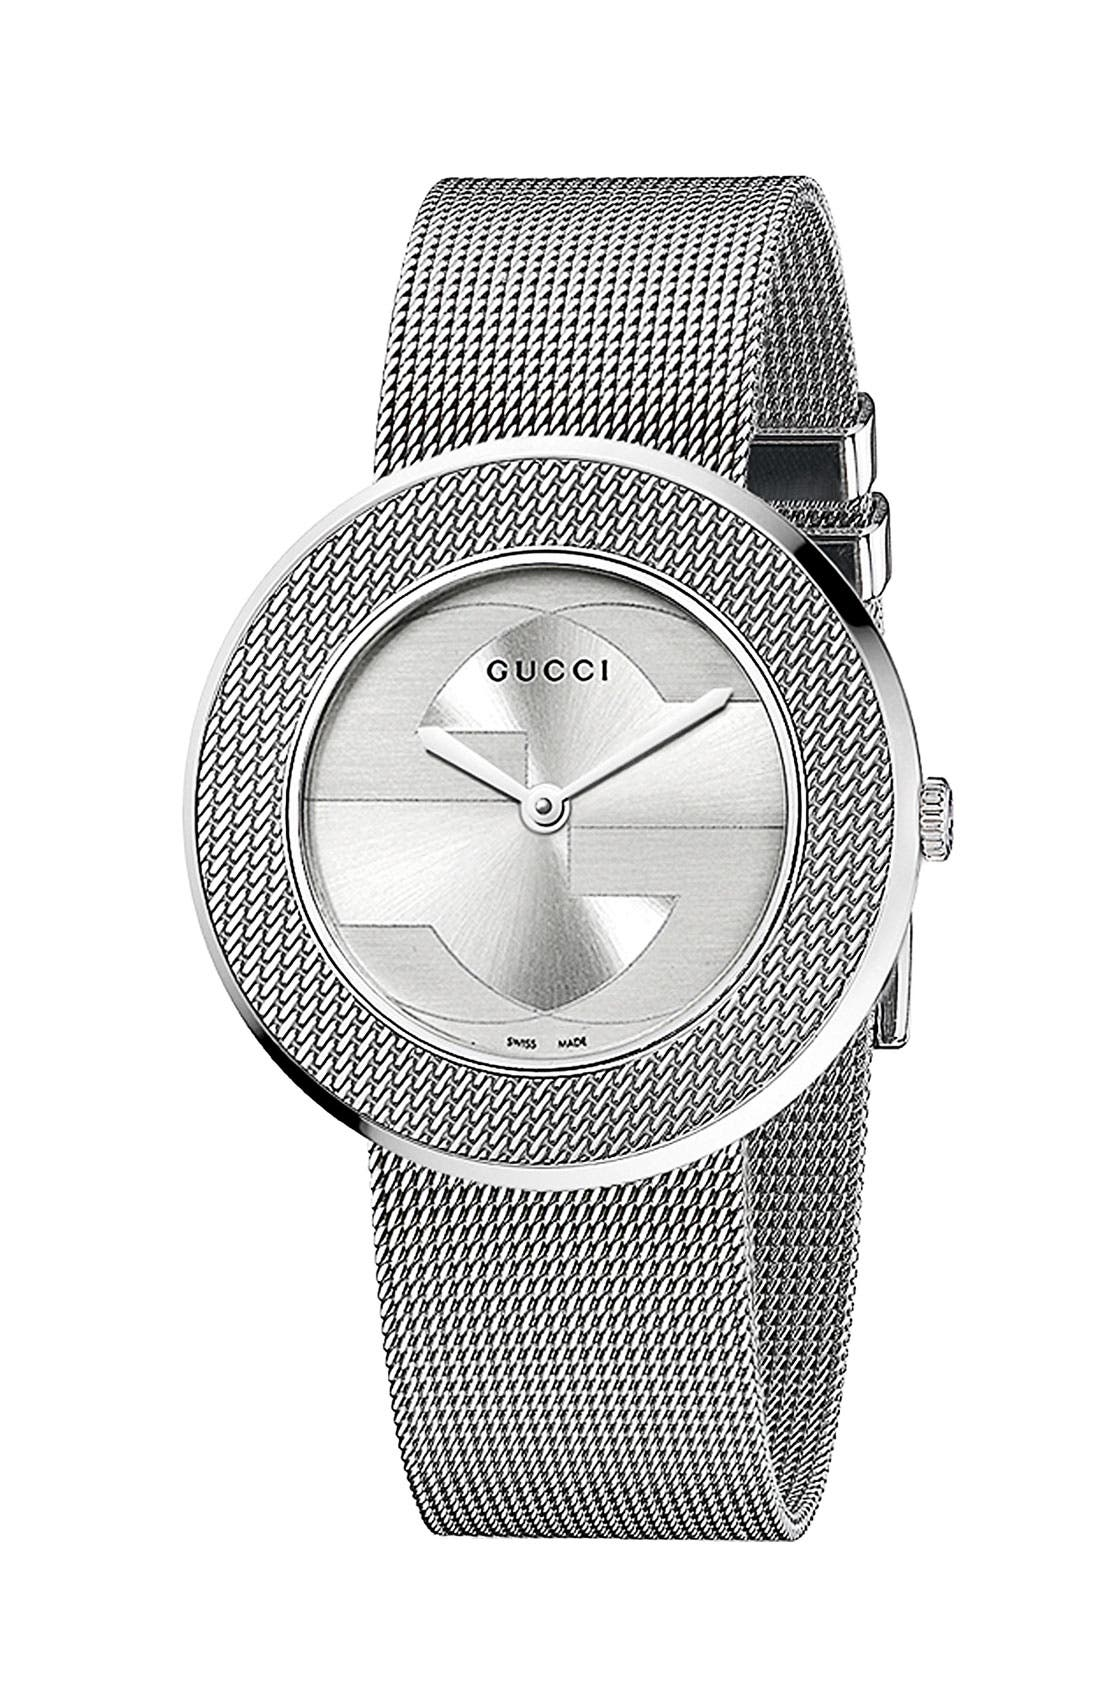 Main Image - Gucci 'U-Play' Round Mesh Watch, 35mm